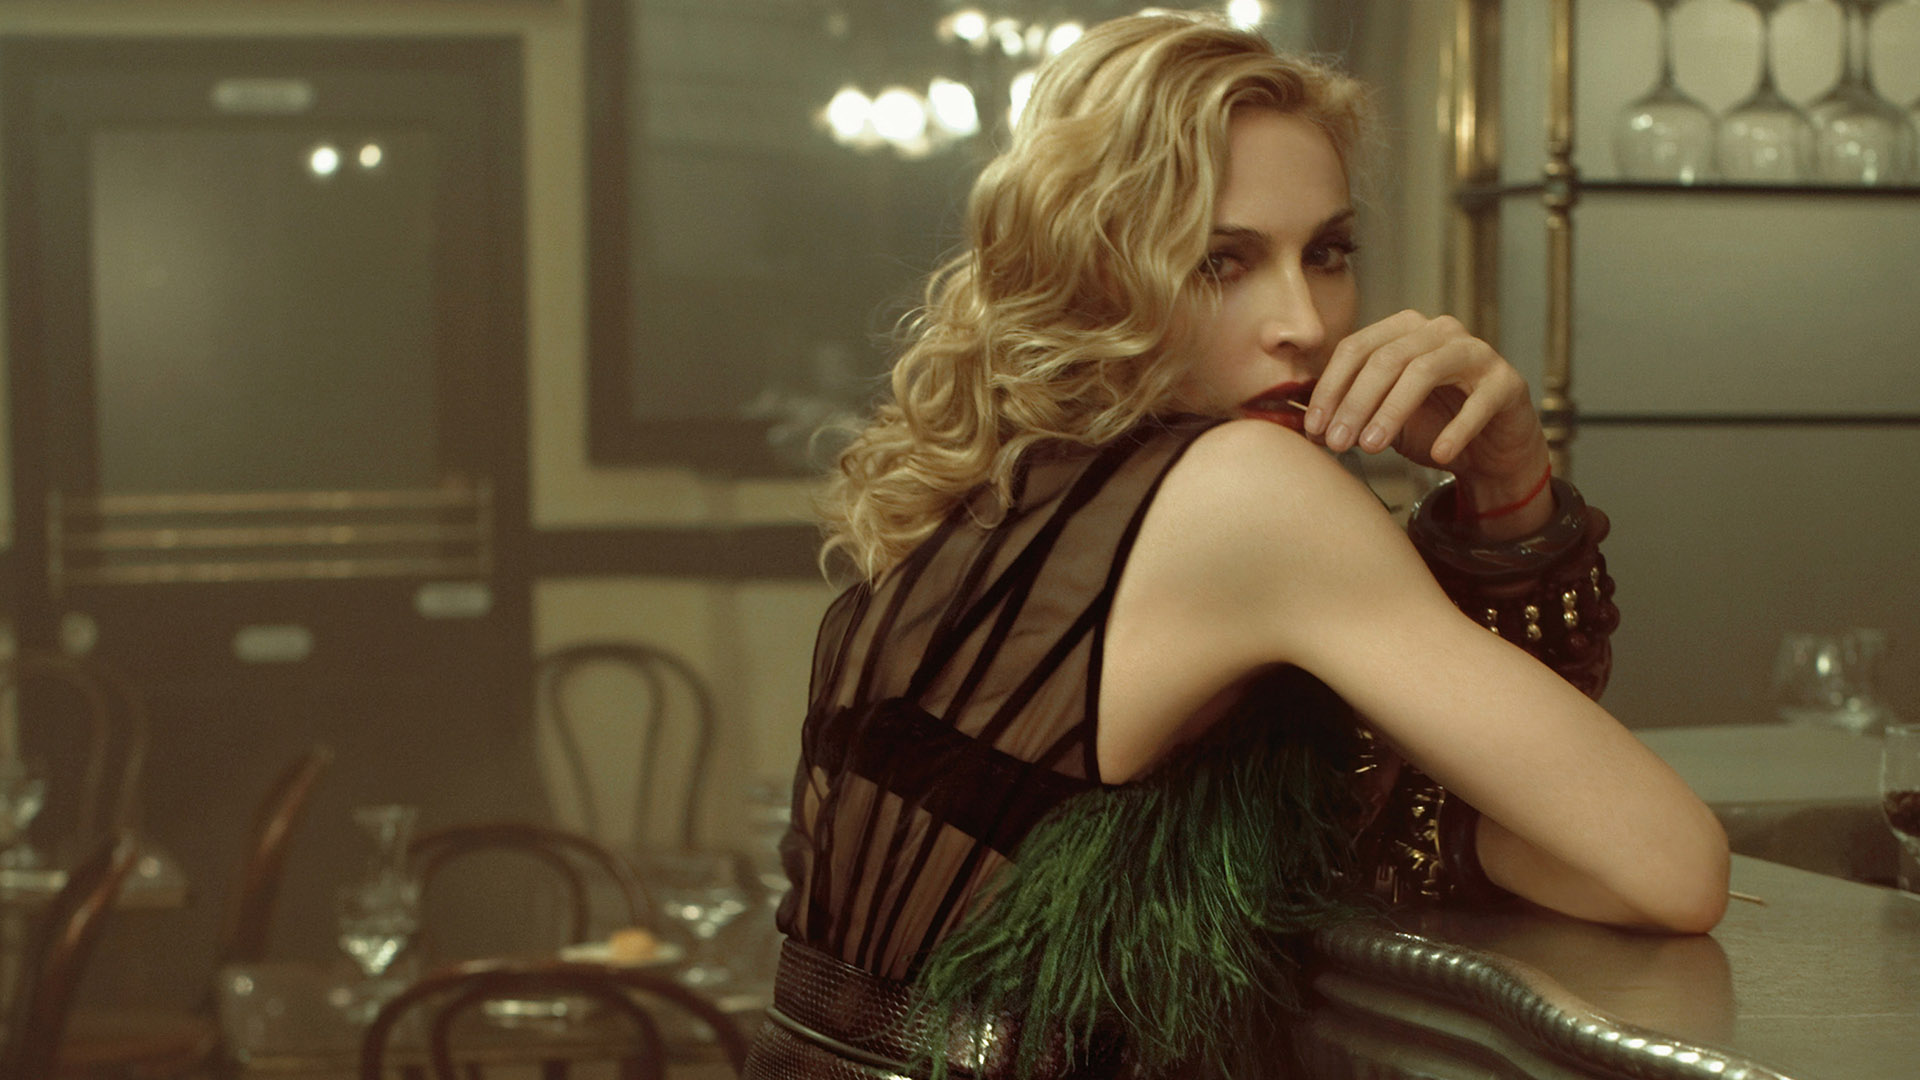 Madonna full hd wallpaper and background image 1920x1080 id 520411 - Madonna hd images ...